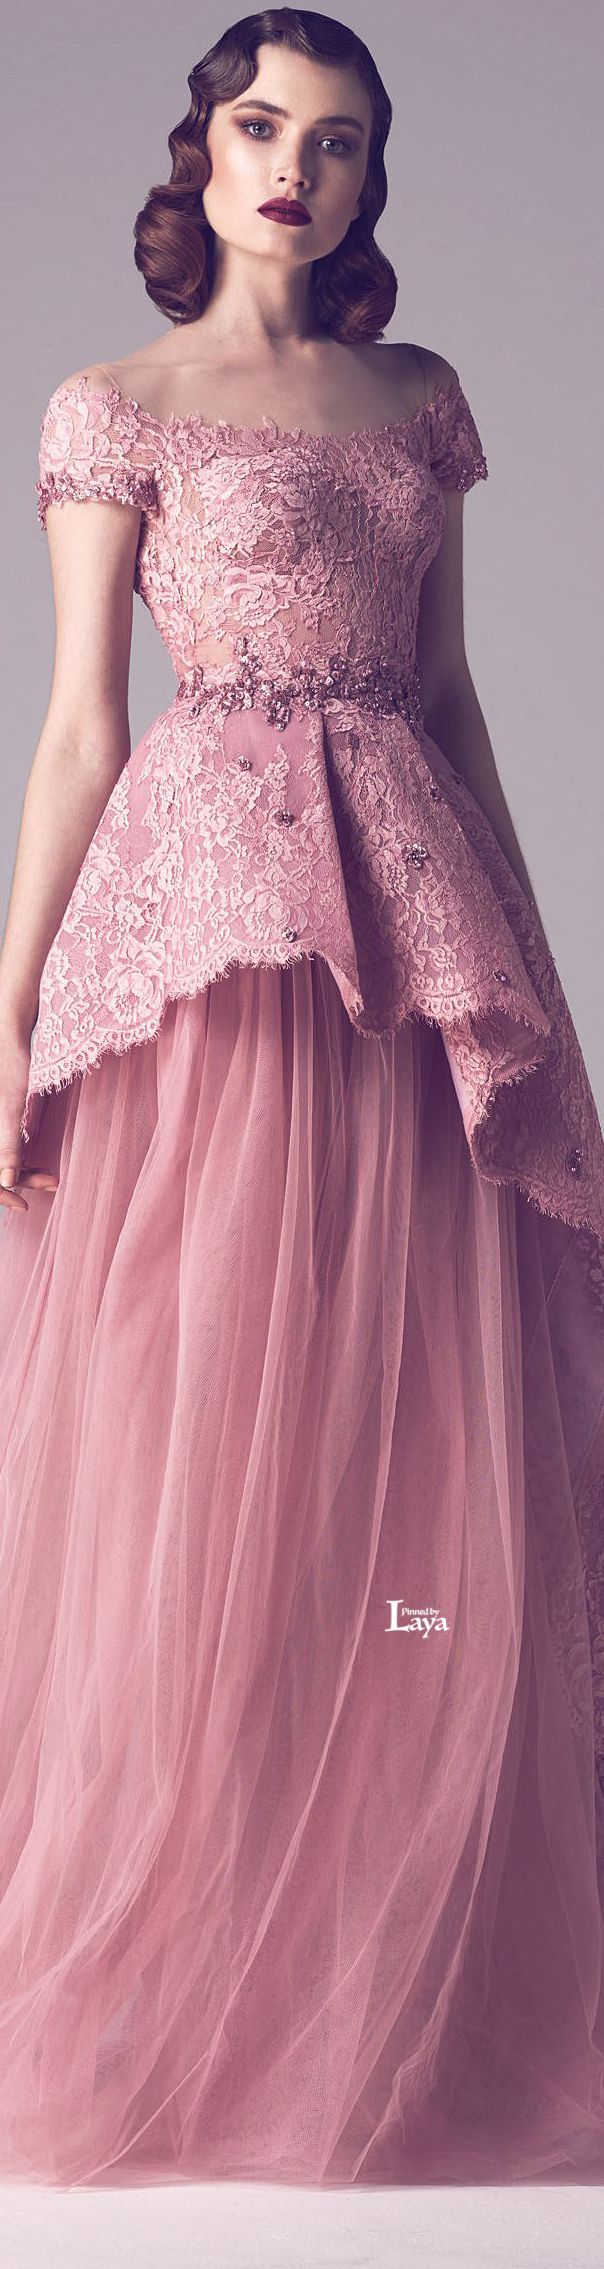 395 best dresses images on Pinterest | High fashion, Party outfits ...